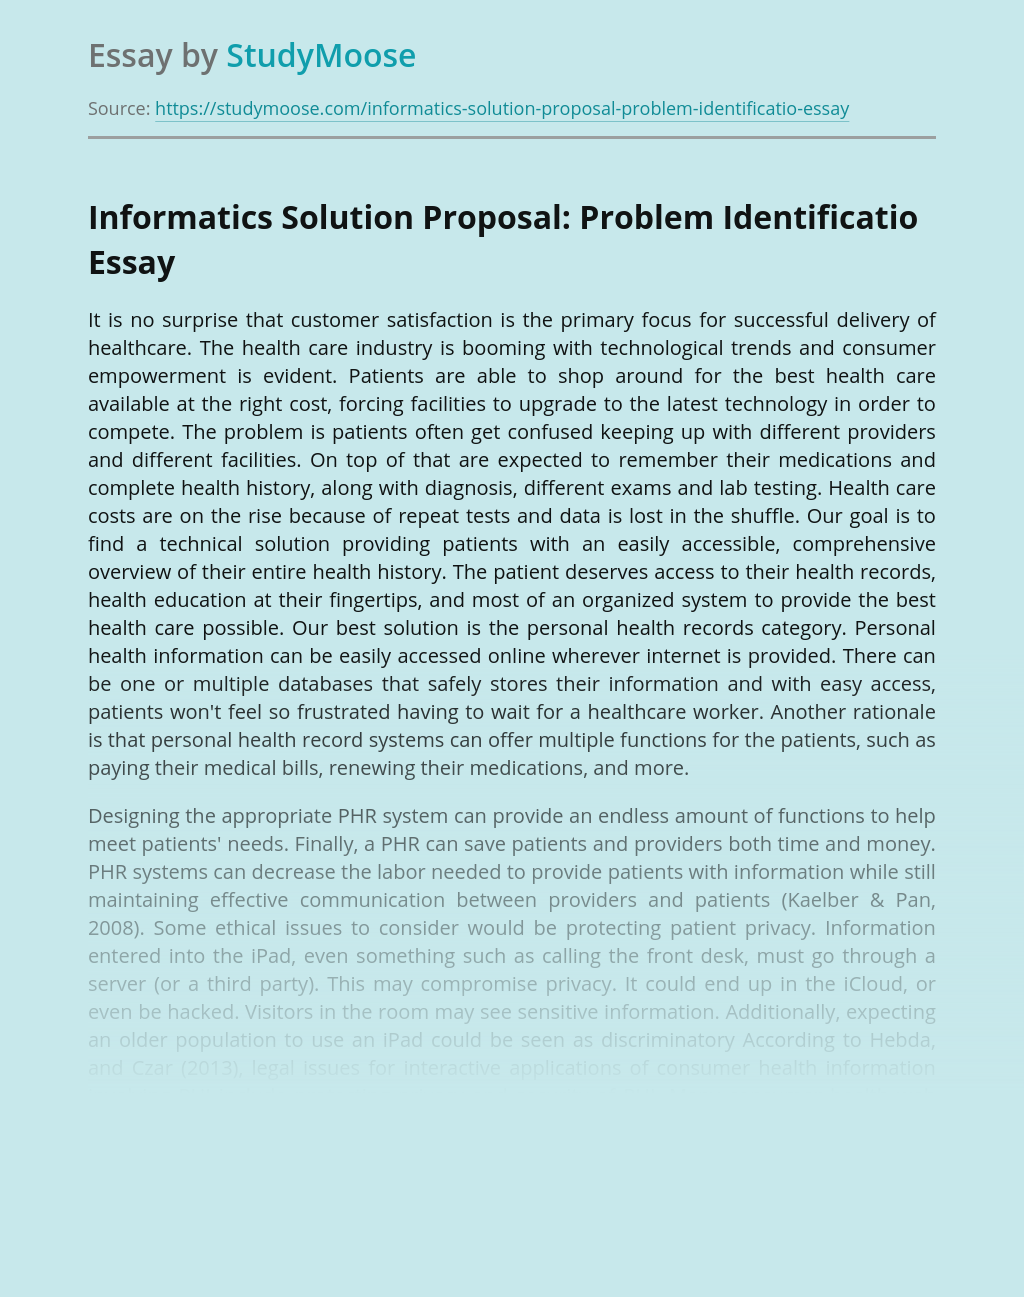 Informatics Solution Proposal: Problem Identification